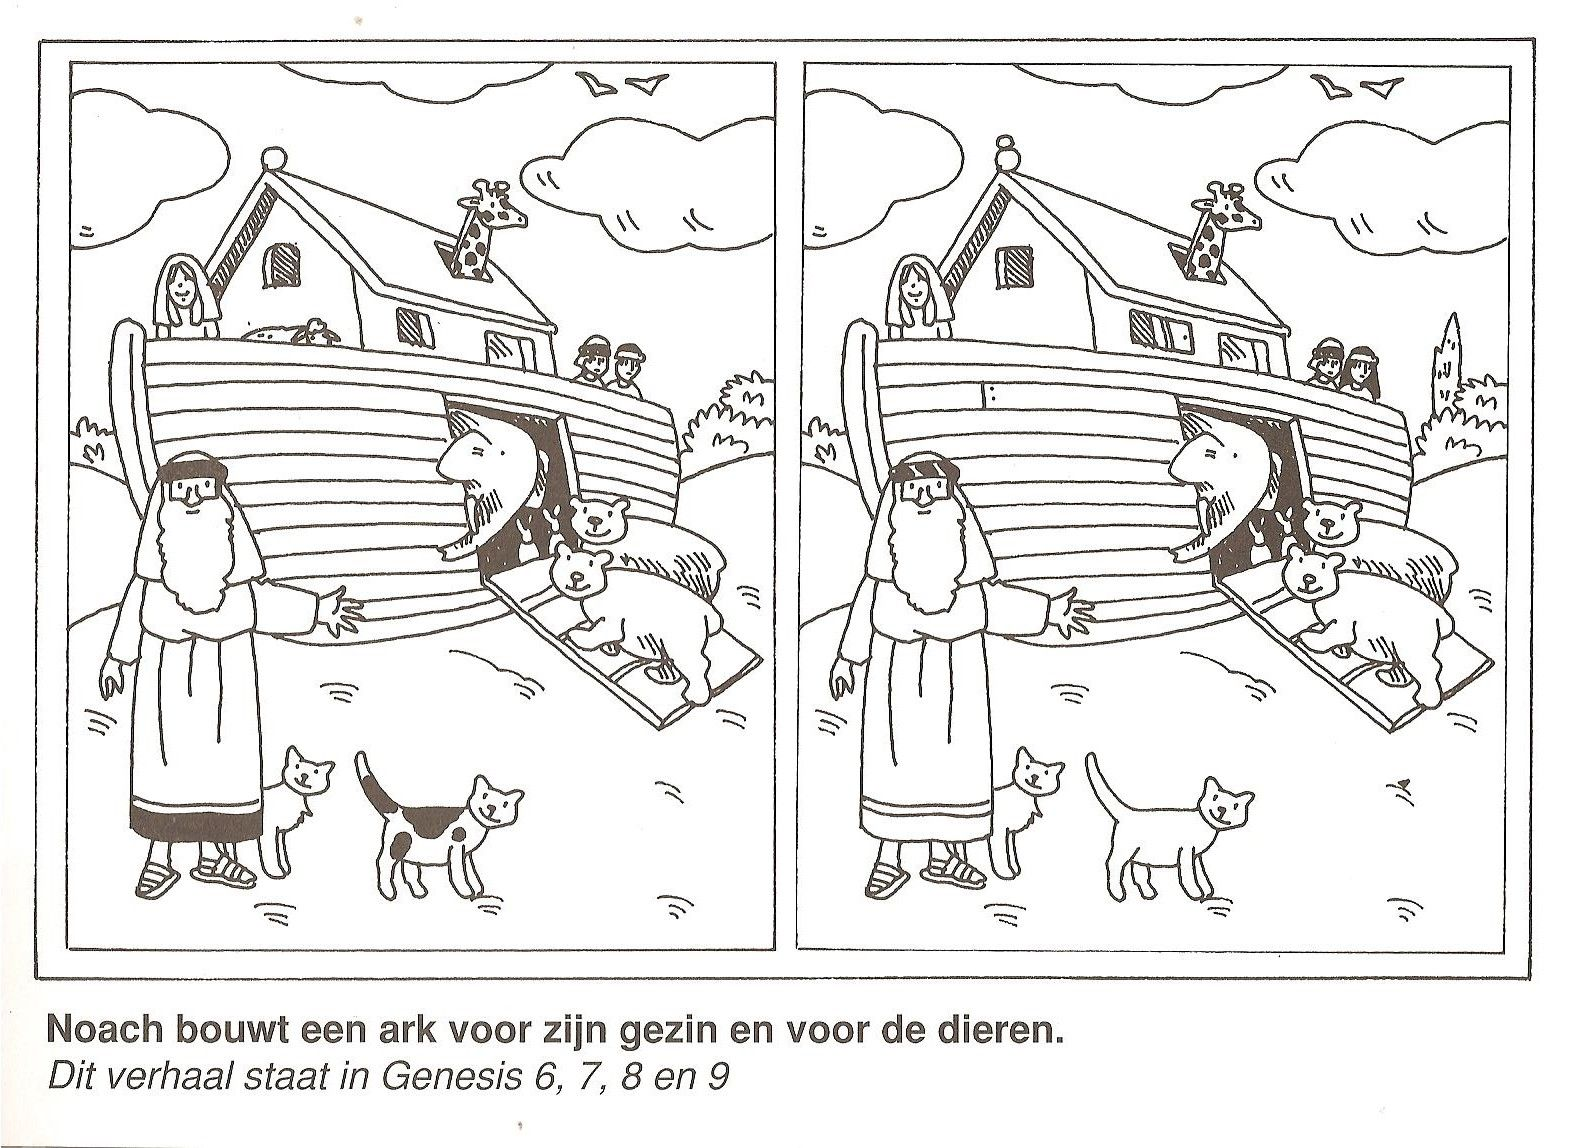 Noah Builds An Ark For His Family And For The Animals Find The 10 Differences Bijbel Kleurplaten Ark Ark Van Noach